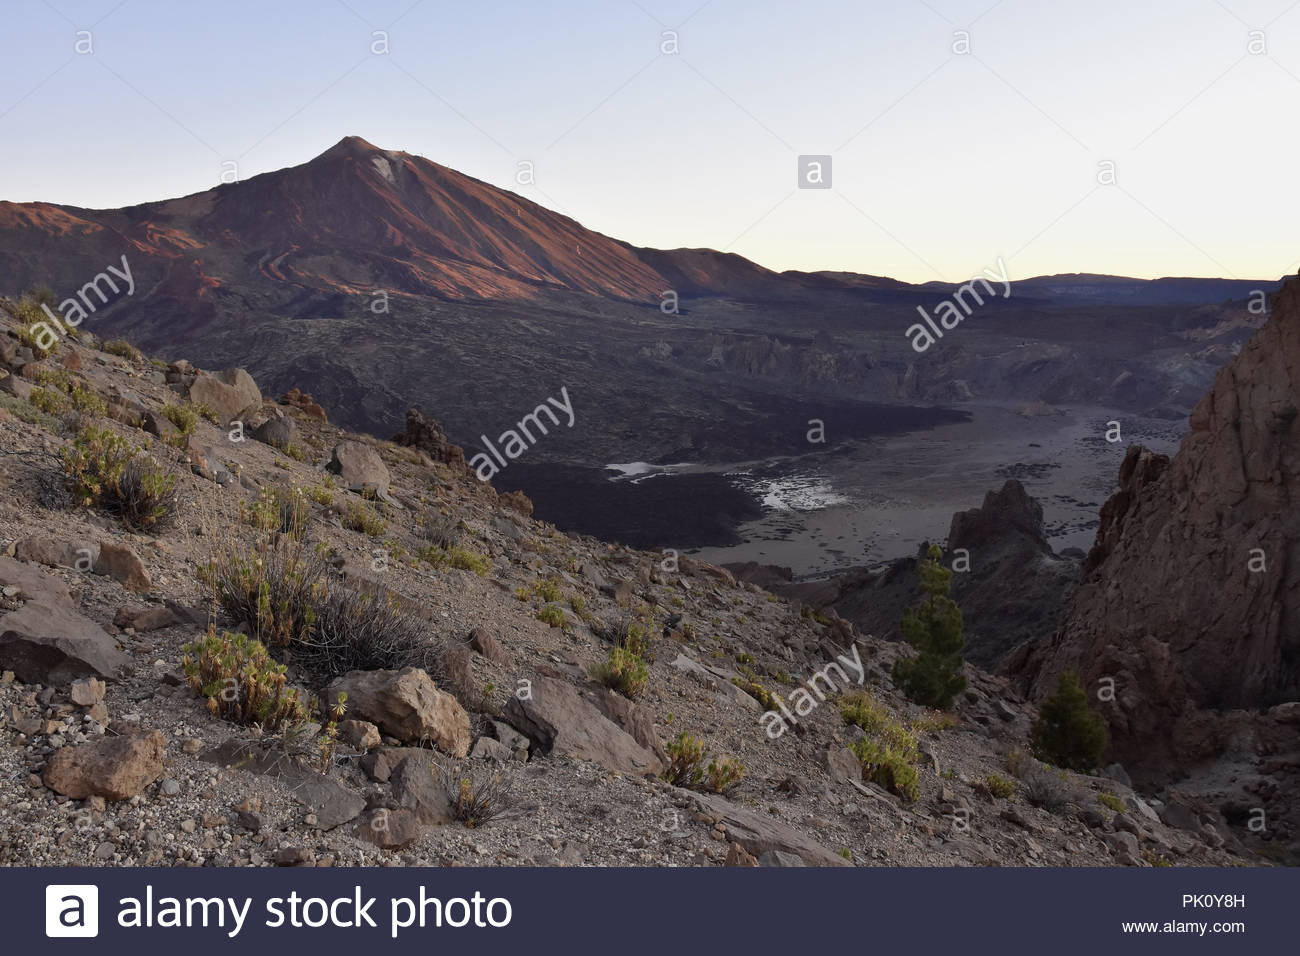 Llano de Ucanca - volcanic valley and Mount Teide 3718 m high peak at dawn, Teide National Park Tenerife Canary Islands Spain. - Stock Image